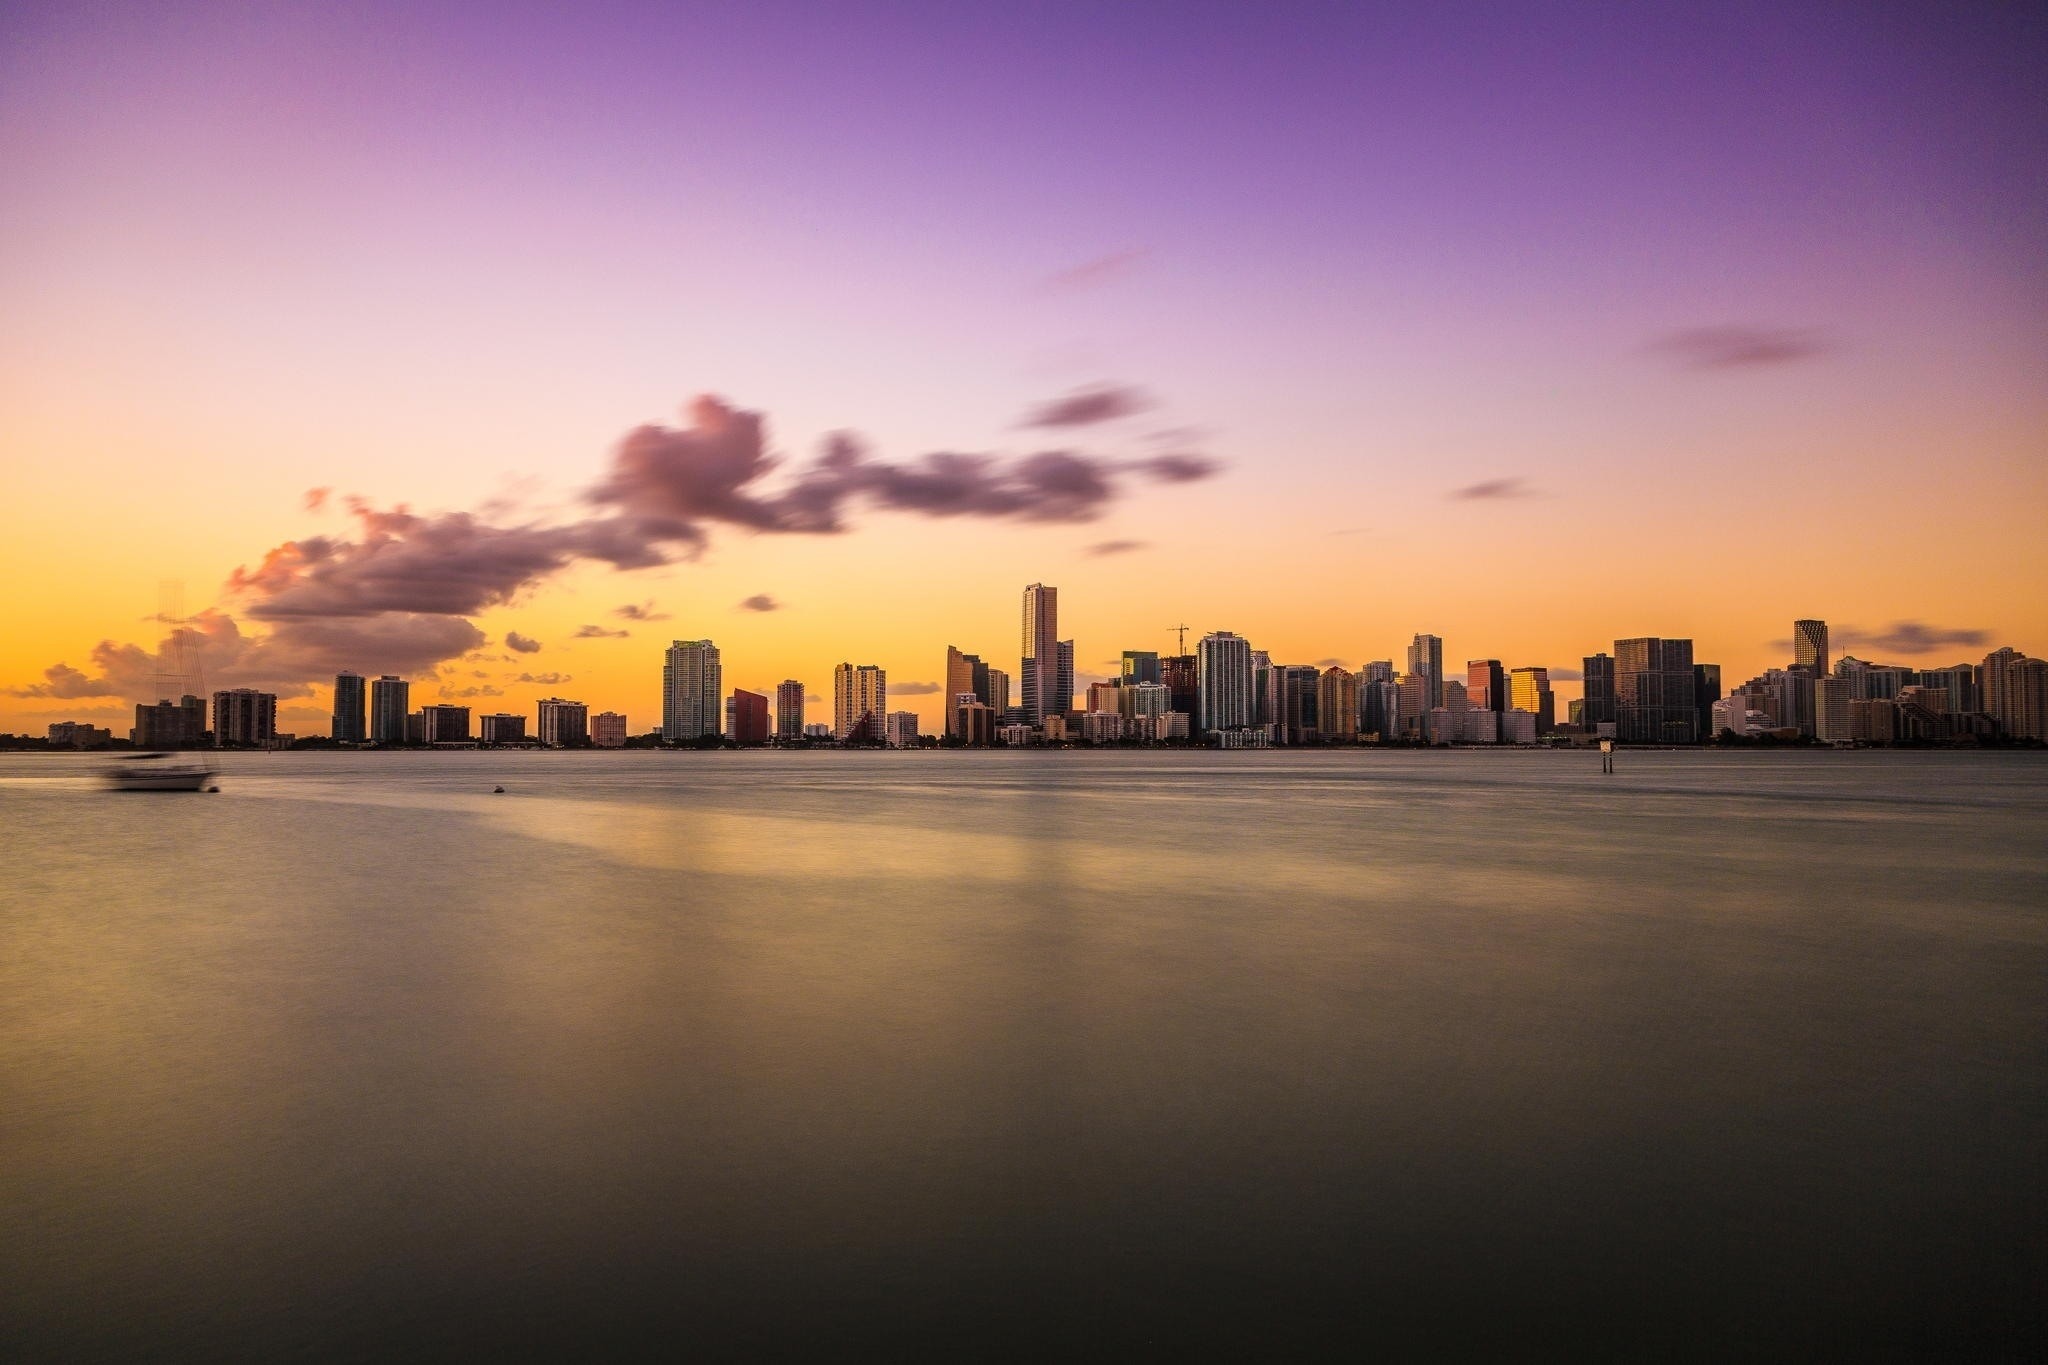 2048x1365 Wallpaper Vice city, florida, Miami, evening, ocean, decline » City,  nature, landscapes - Free HD Desktop Wallpapers. Backgrounds of cities and  nature